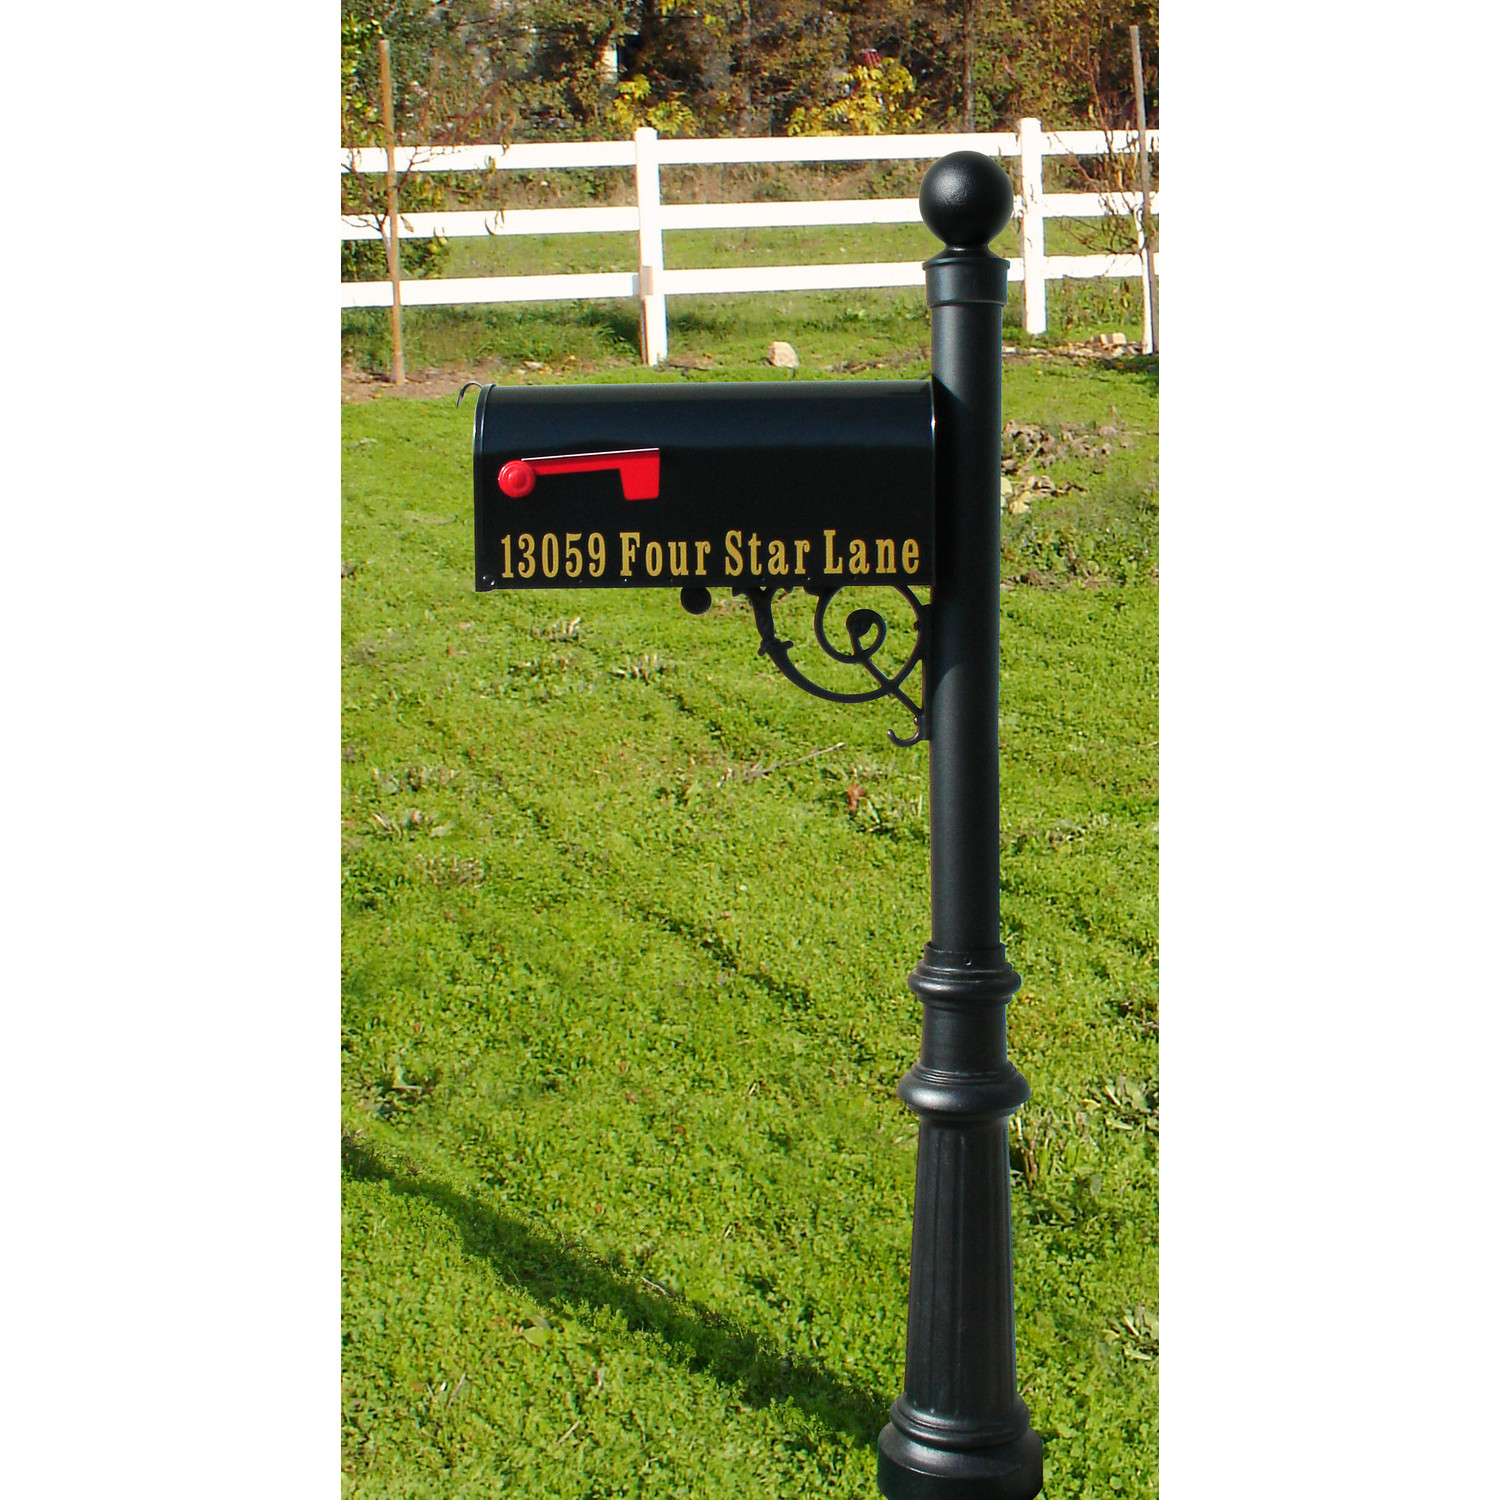 Why You Should Go for Lawn ddress Signs HomesFeed - ^